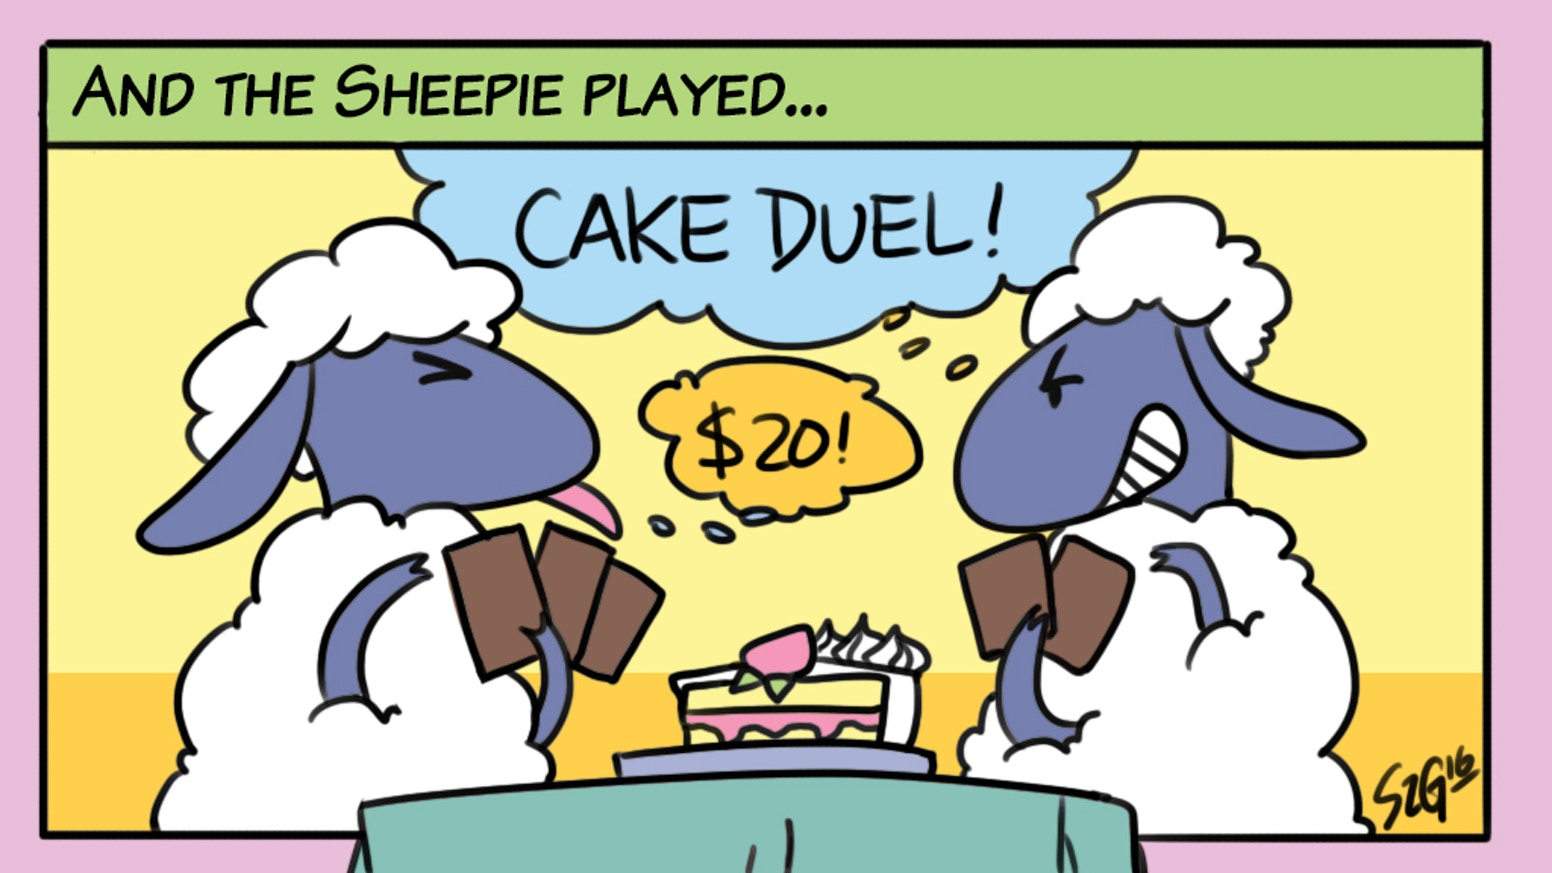 """Cakestart this deceptively simple card game for 2 players. Fight and fleece in equal measure to become the next """"King of Cakes."""""""